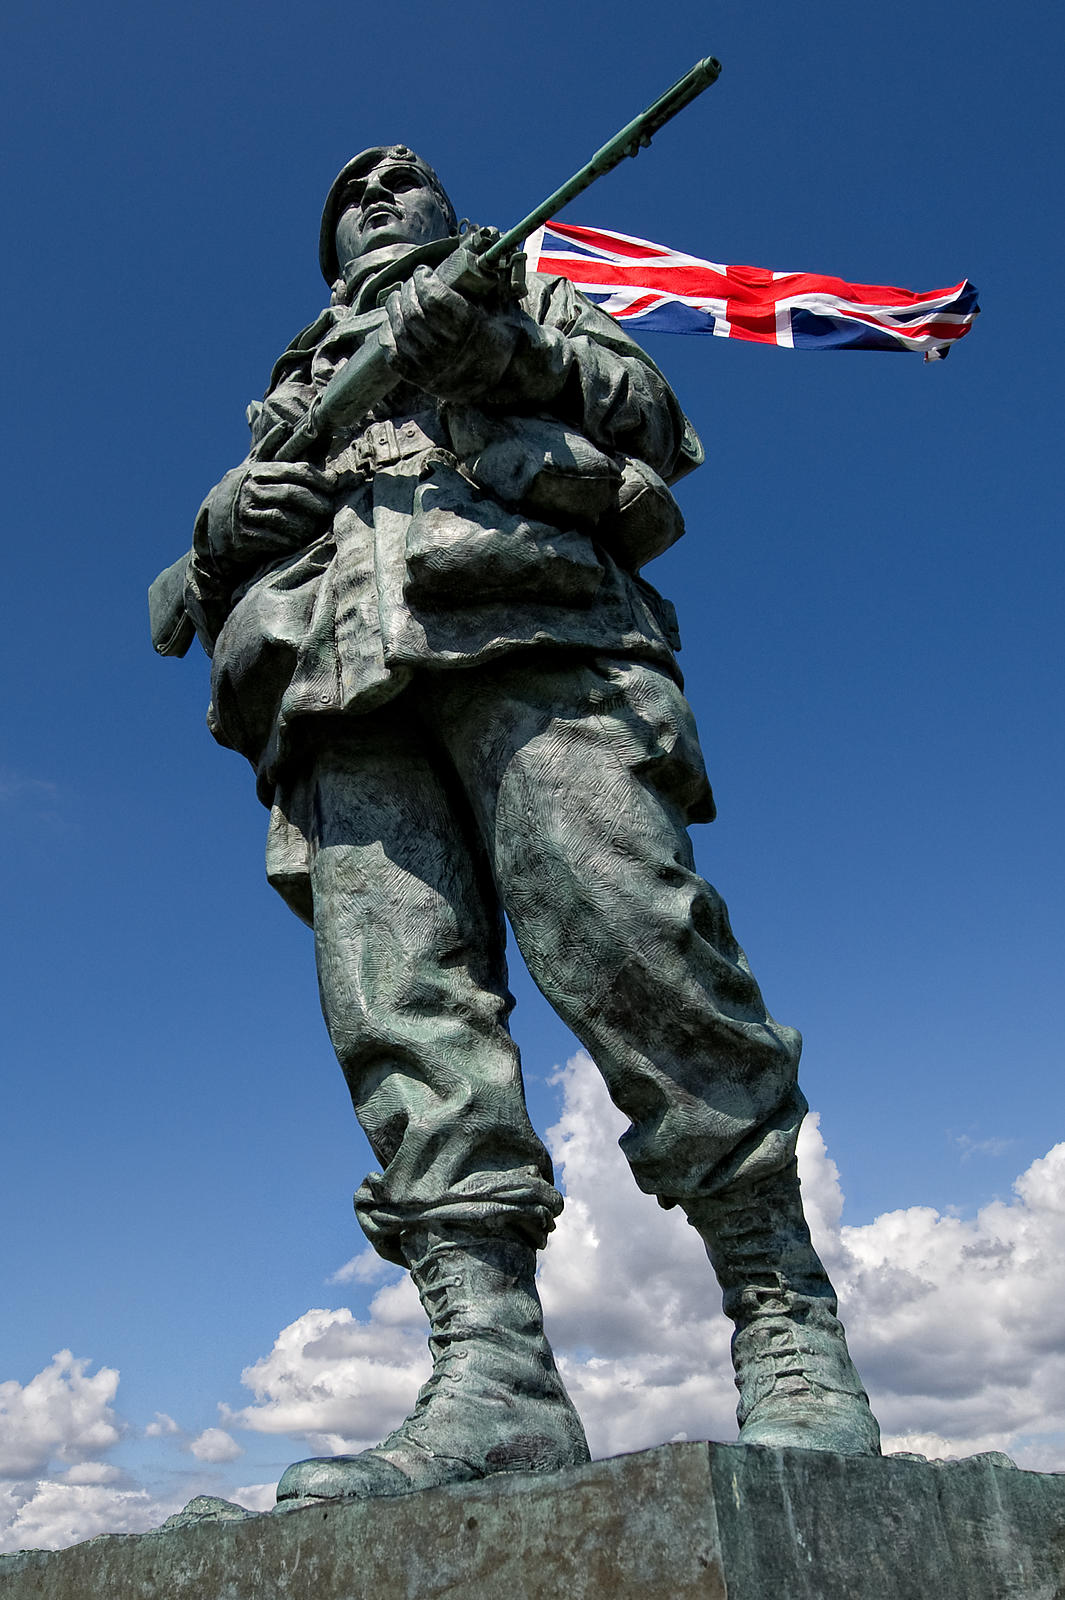 Yomper Commemorative Statue at Royal Marines Museum, Southsea